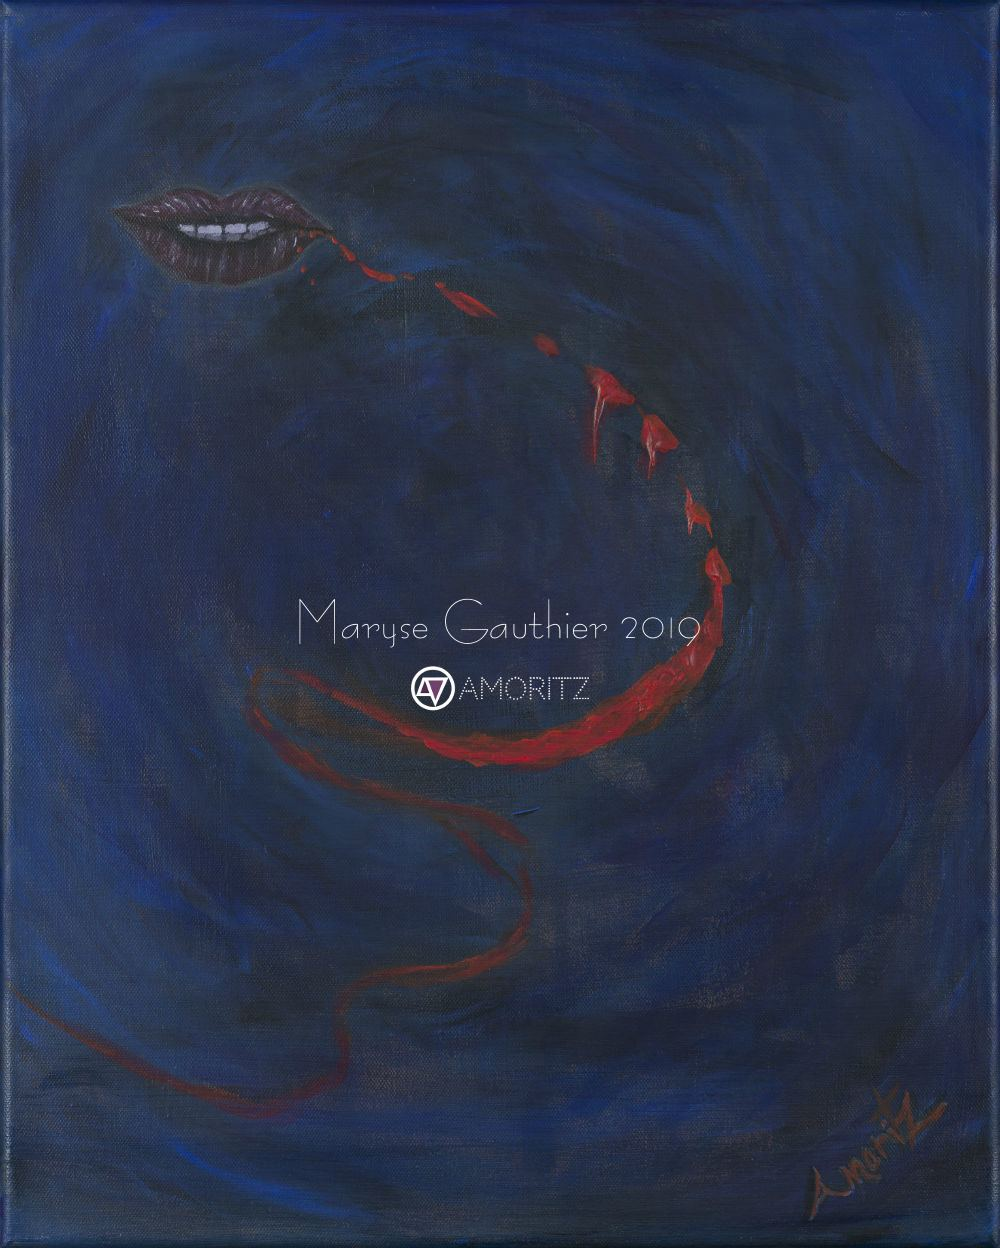 (Version 1) Break of words Surrealist painting by Maryse Gauthier 01-2019